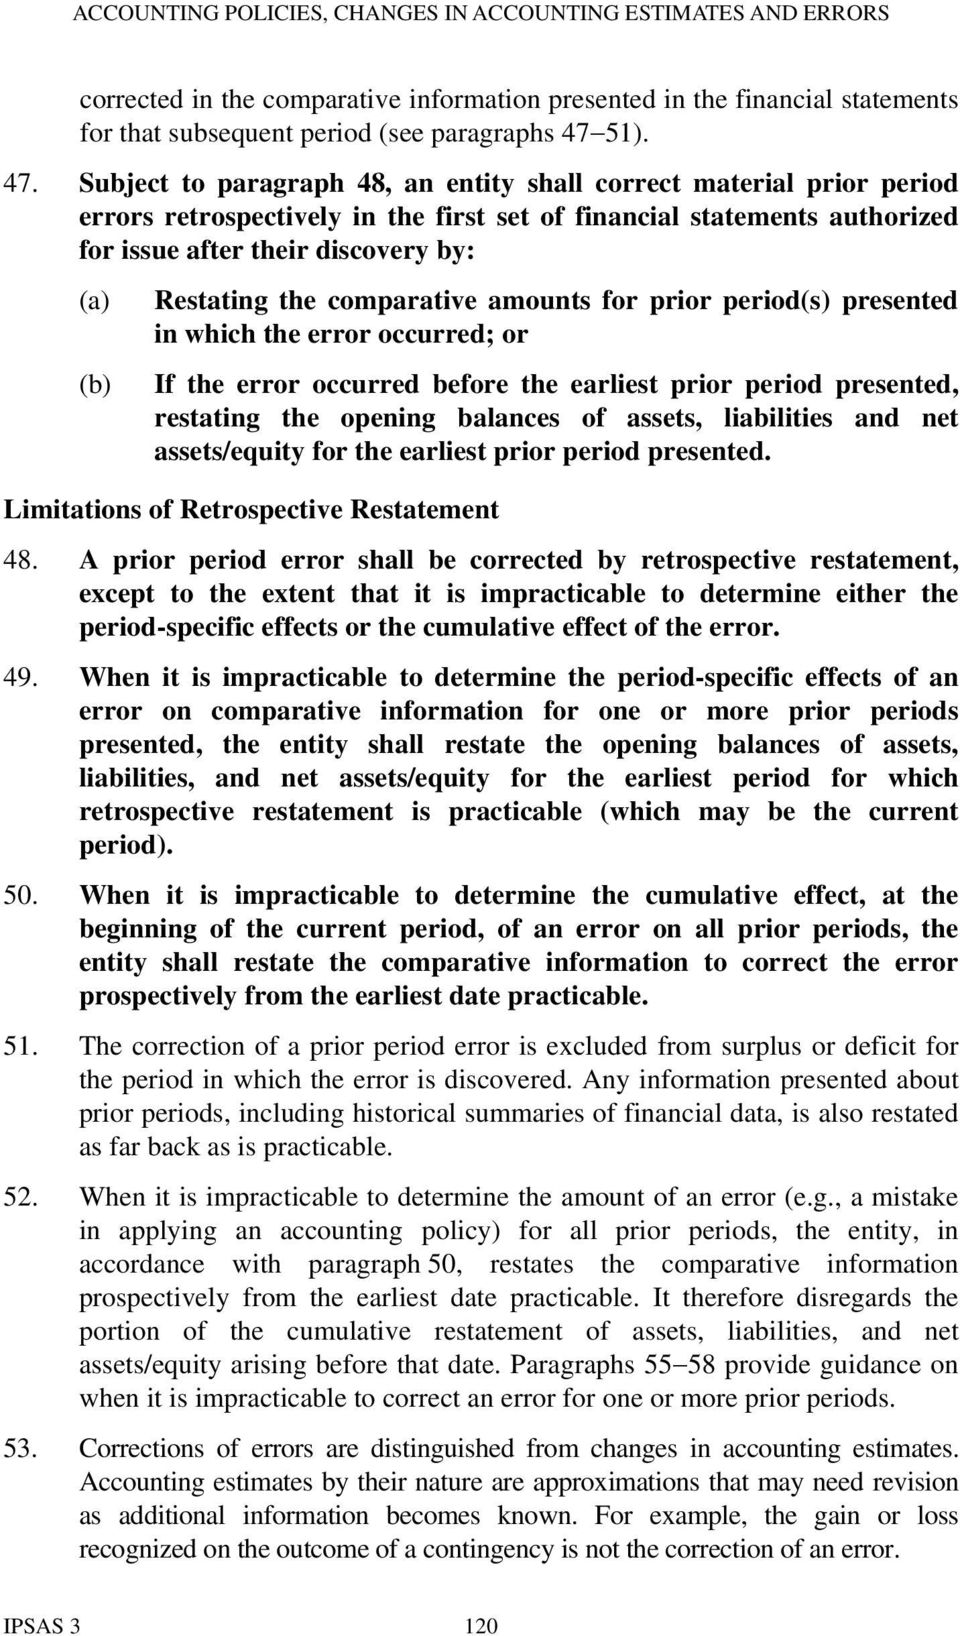 Subject to paragraph 48, an entity shall correct material prior period errors retrospectively in the first set of financial statements authorized for issue after their discovery by: (a) (b) Restating